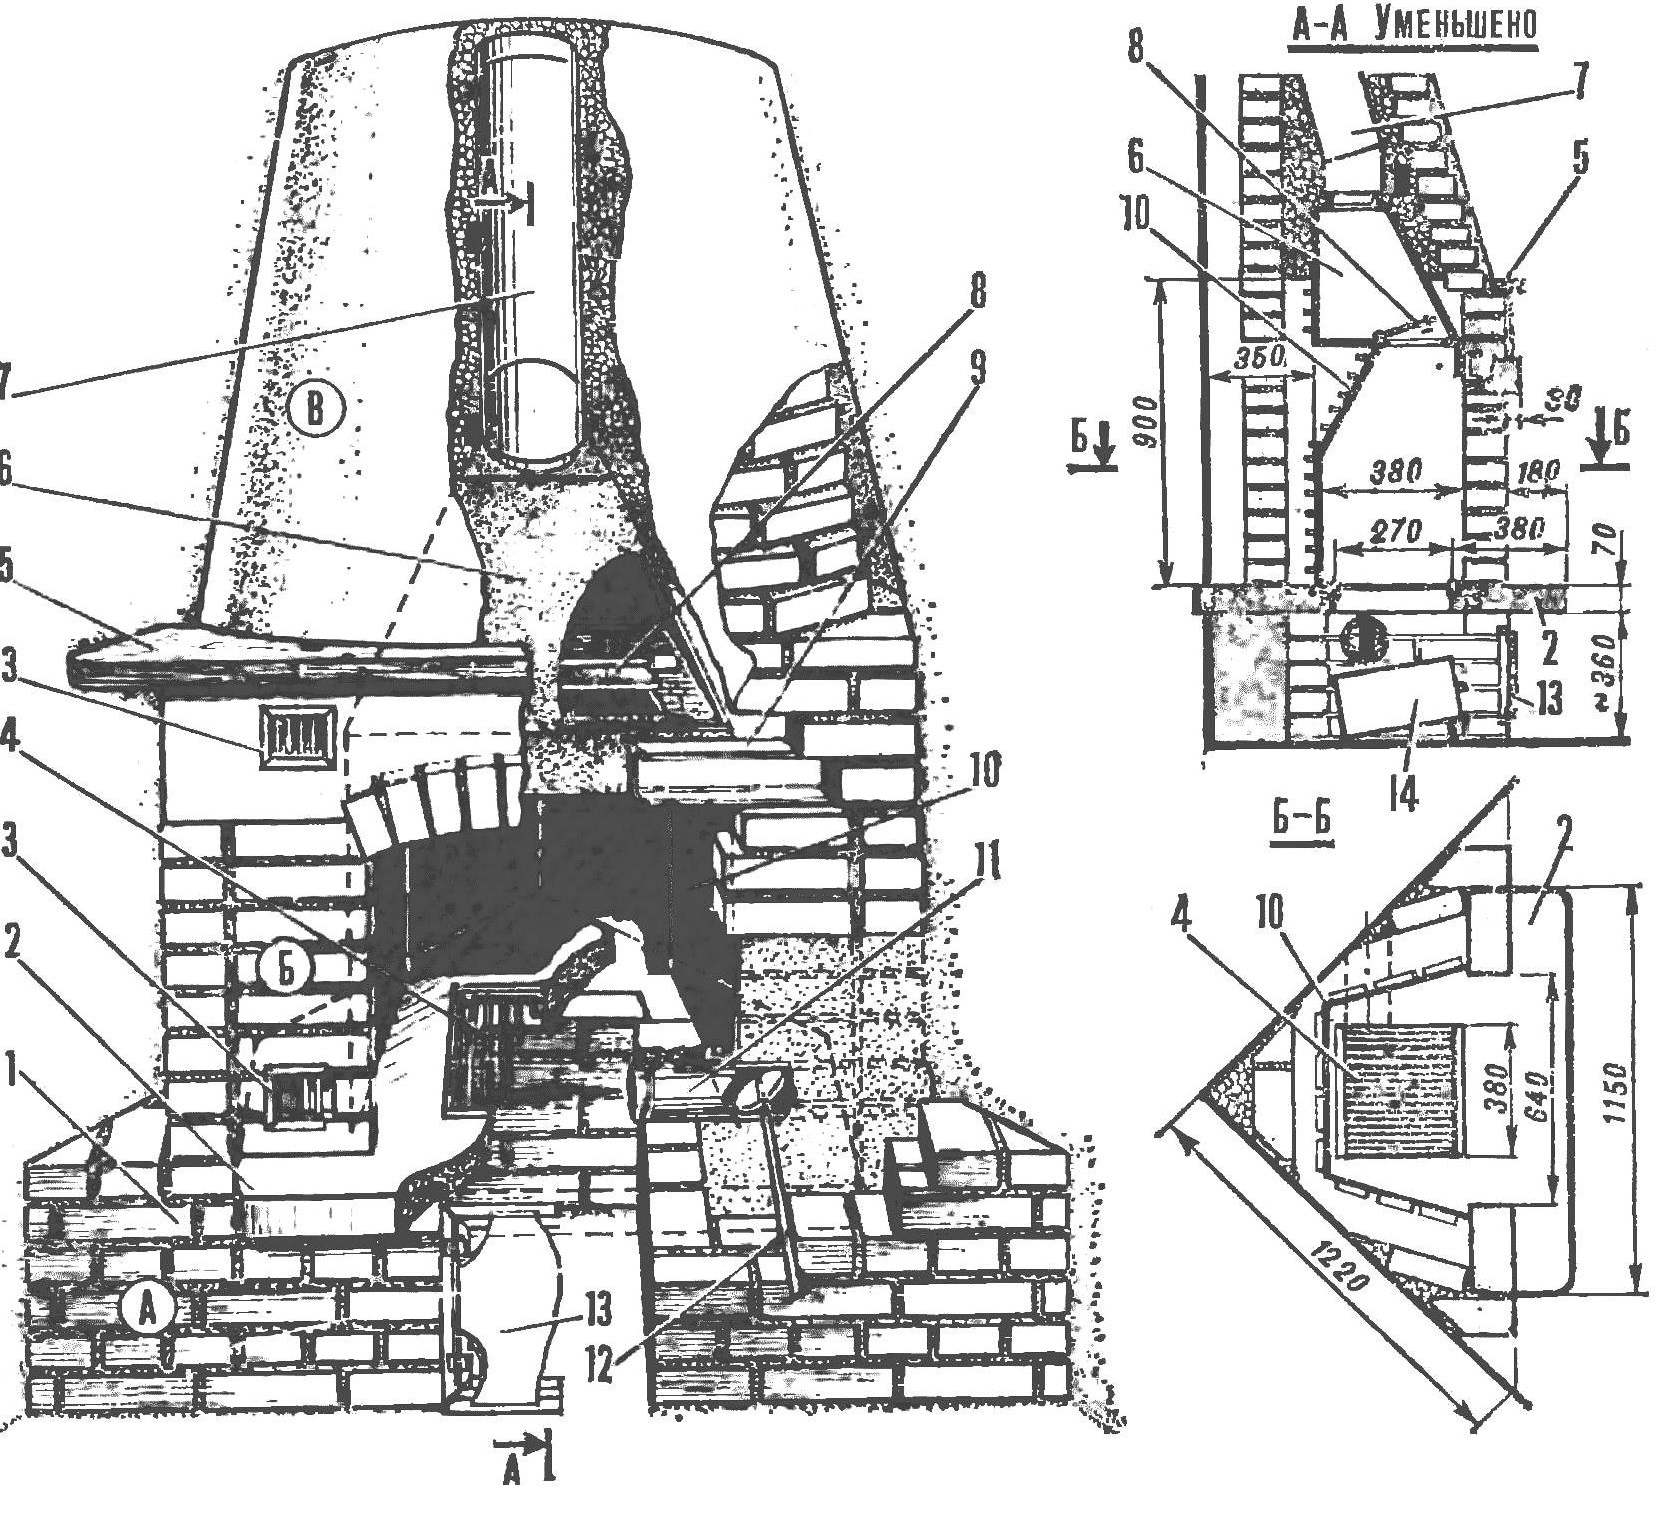 Fig. 1. Diagram of fireplace